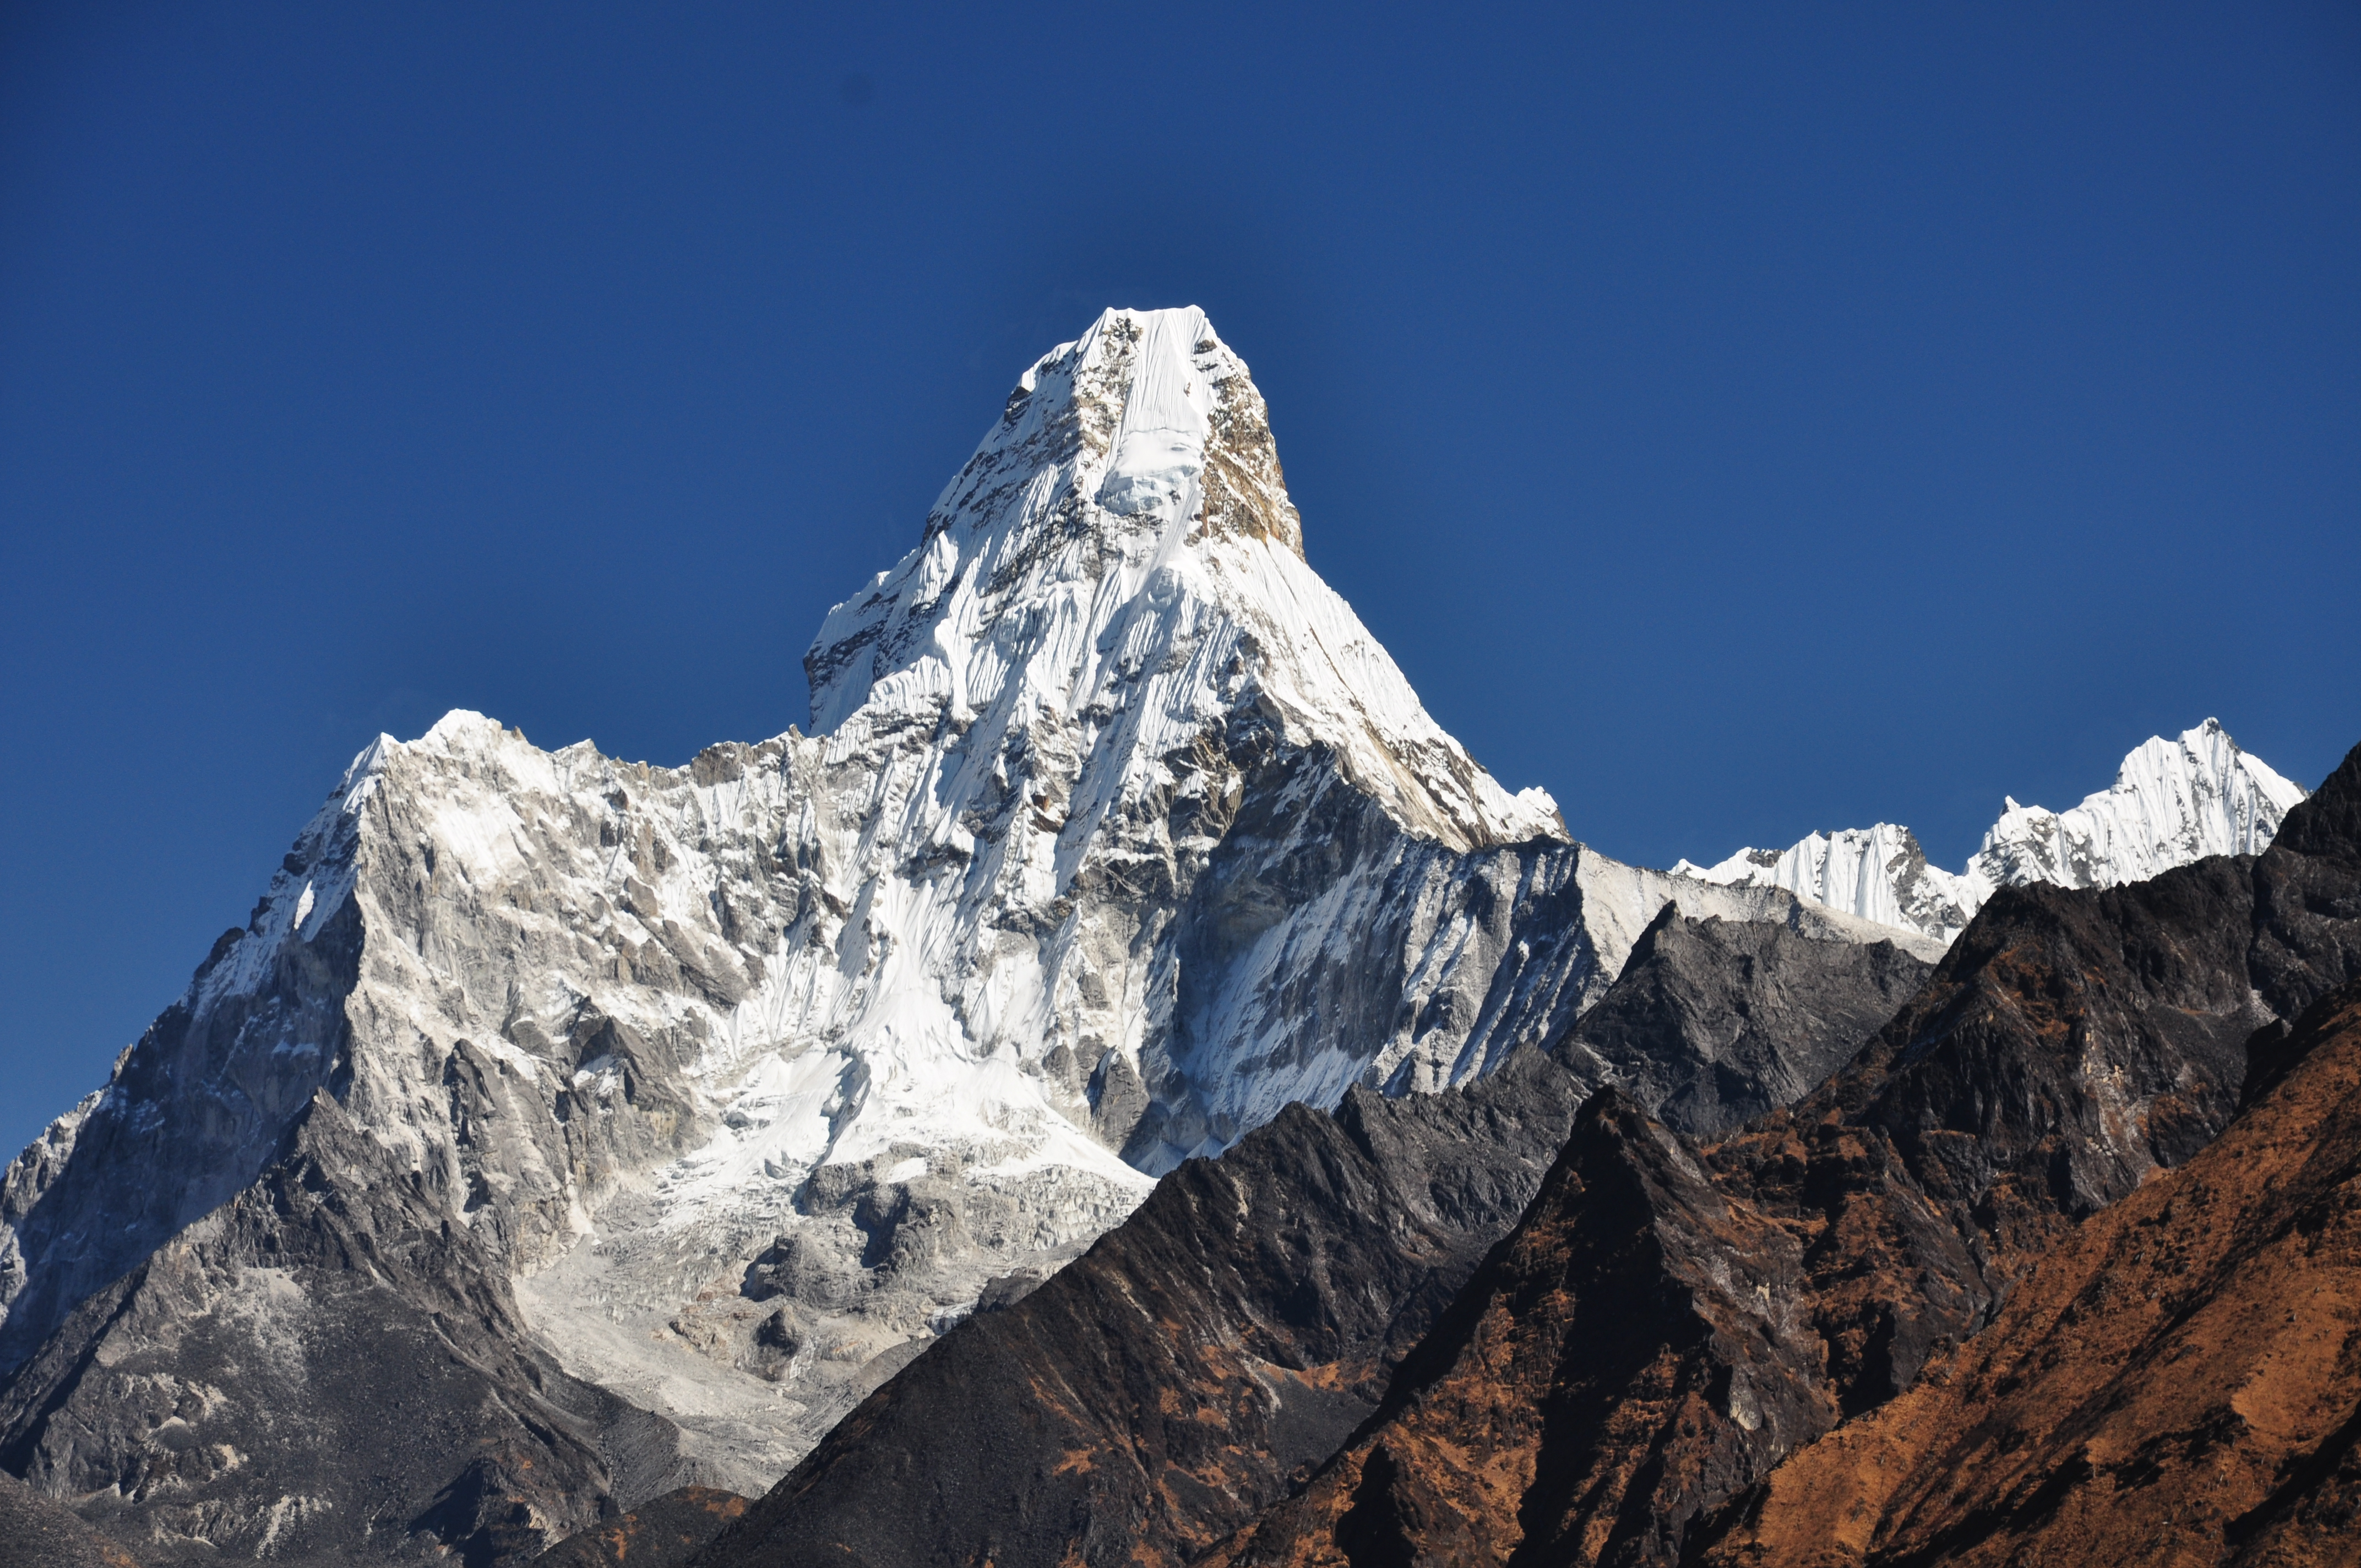 Are you planning to Hike in Nepal? Here are the top 5 Best Treks in Nepal